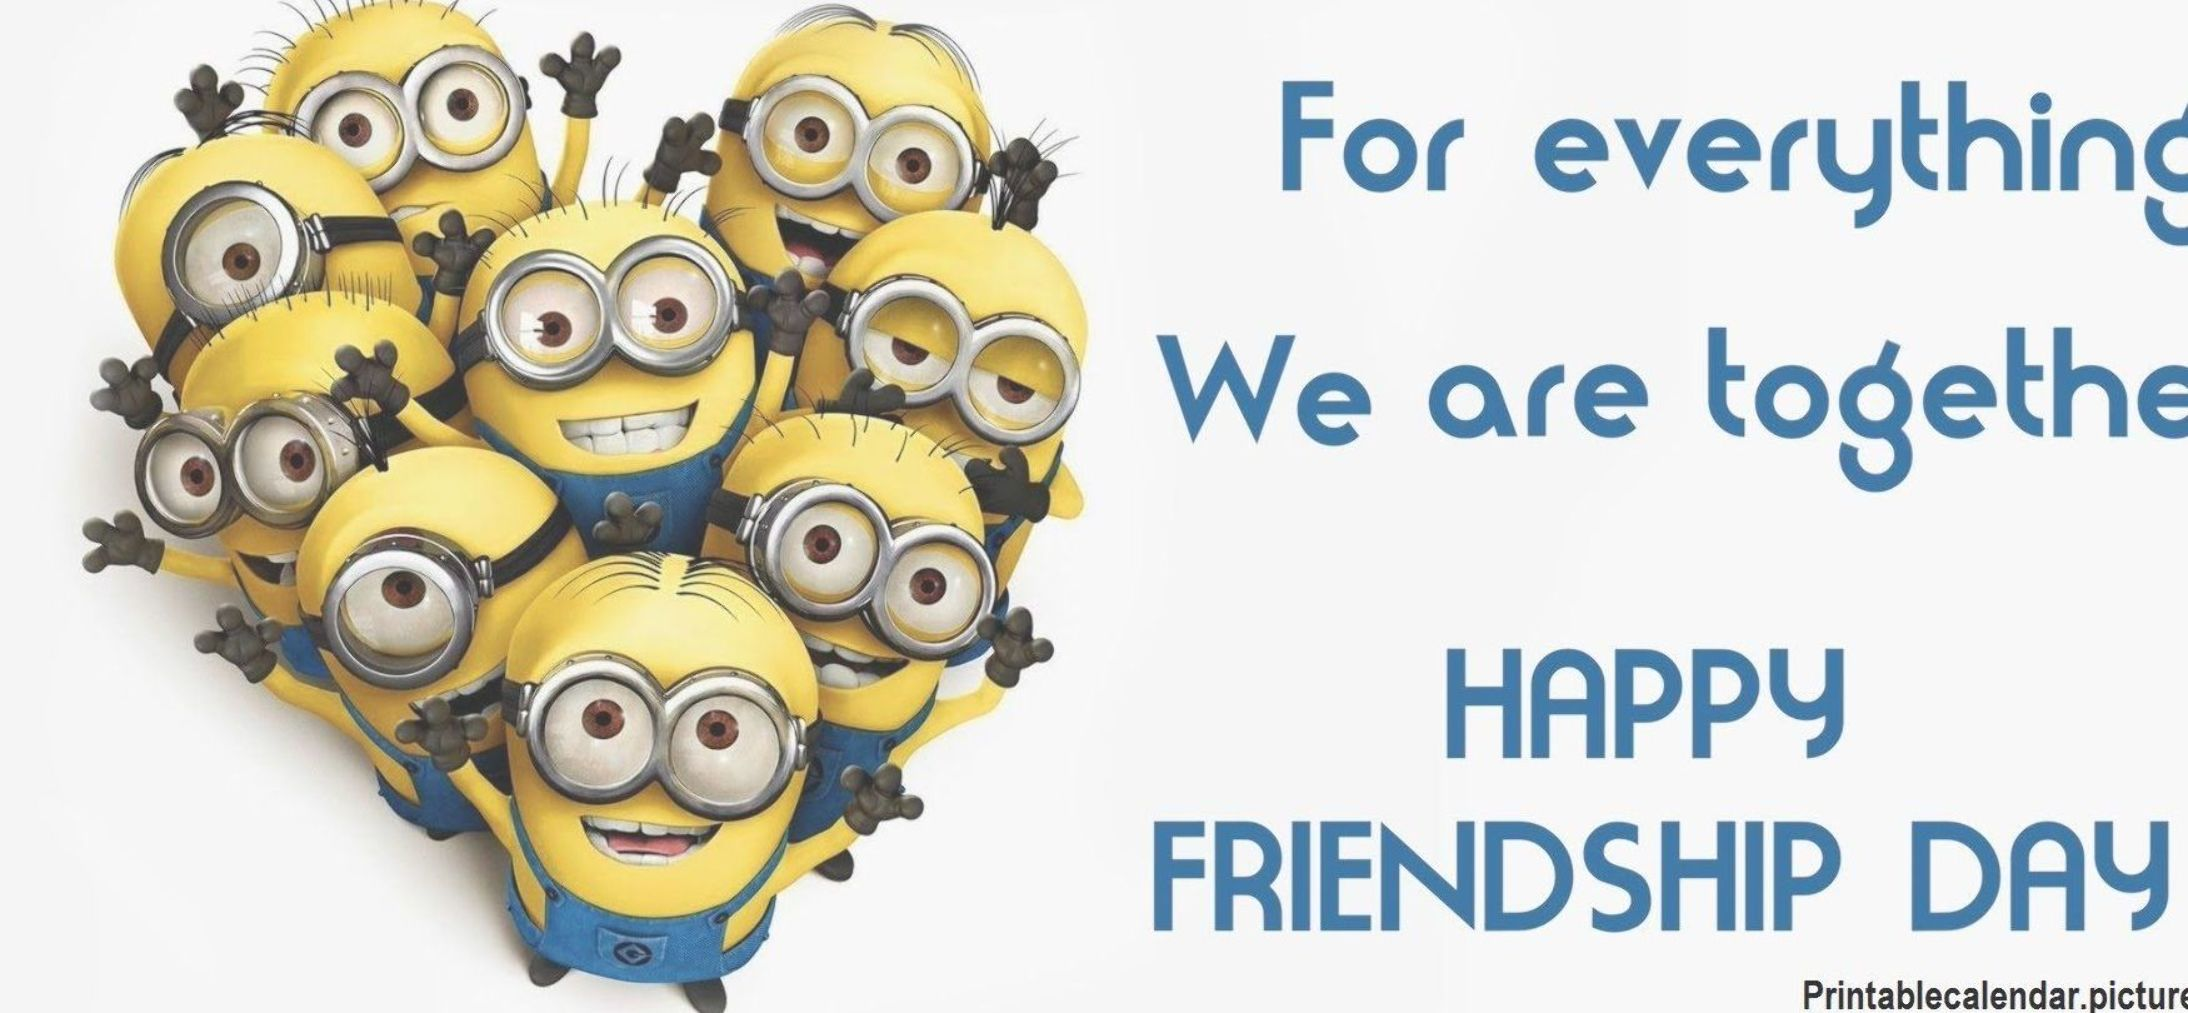 Friendship Day Funny Quotes Friendshipday Holiday Cuteimage Friendship Day Images Happy Friendship Day Friendship Day Quotes